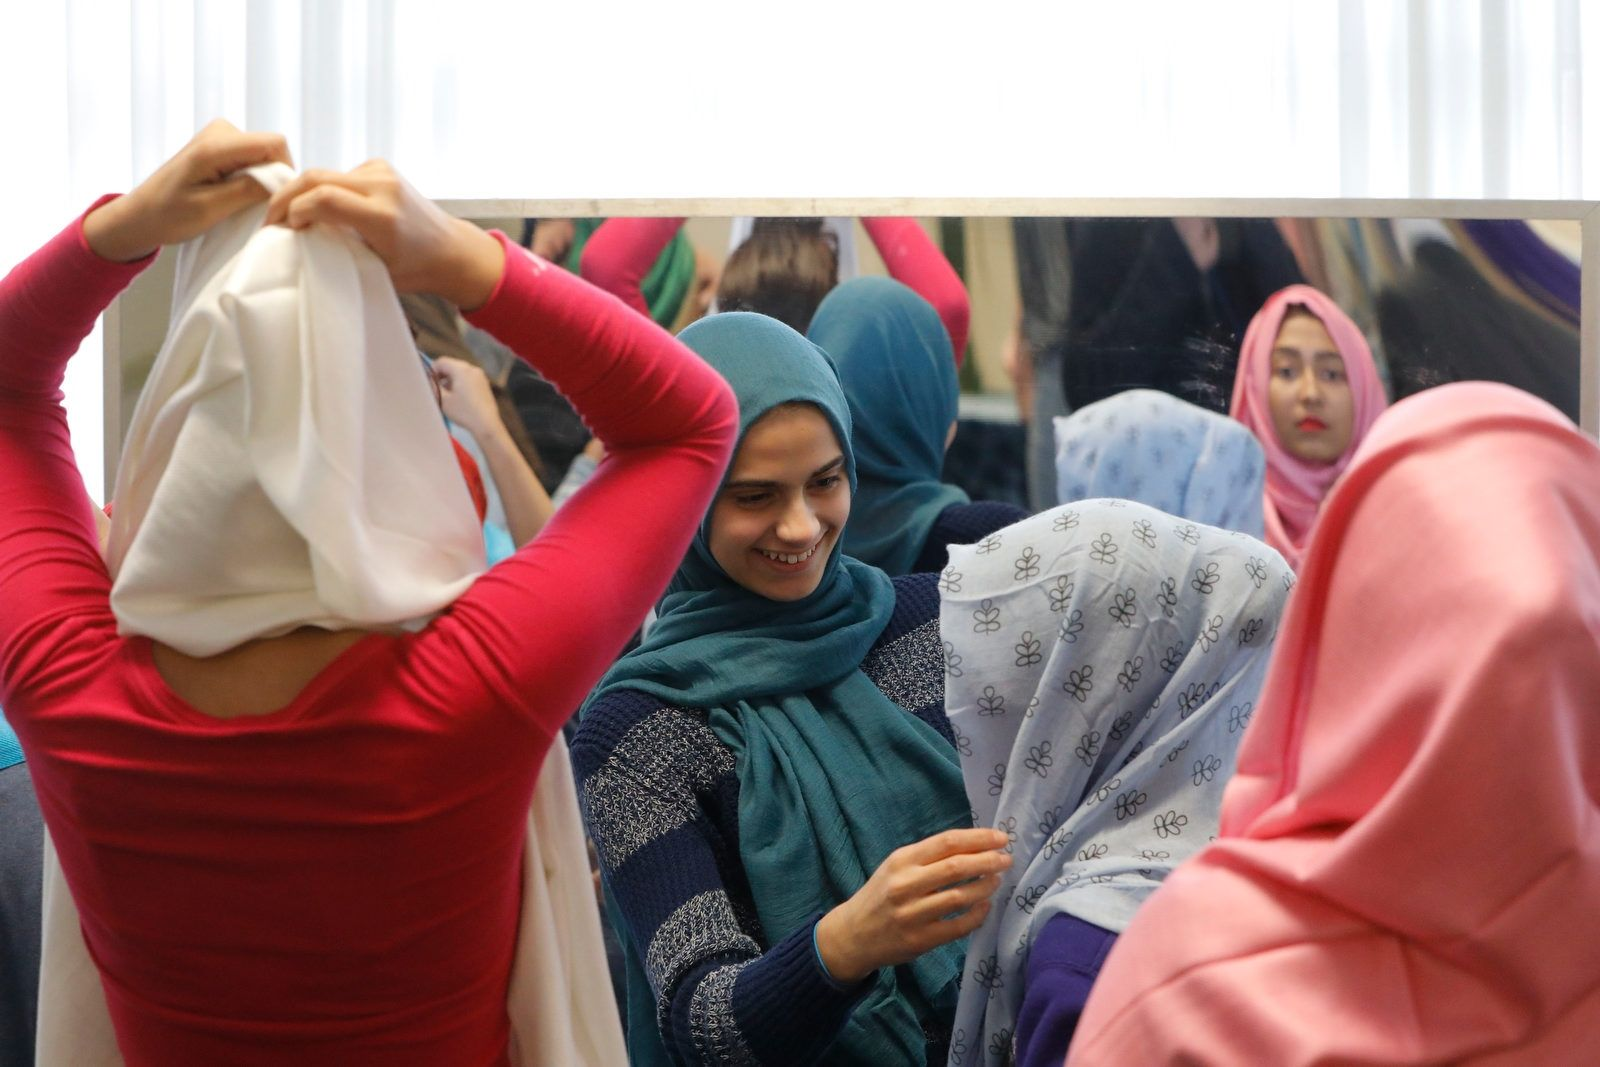 Students help each other put on and adjust their hijabs during an event to celebrate World Hijab Day at Leonardo daVinci High School.  On Feb. 1 of every year, World Hijab Day Organization asks global citizens of all faiths to wear the Hijab for a day in solidarity with Muslim women worldwide. u201cThe overall mission of WHD is to create a more peaceful world where global citizens respect each other.u201d